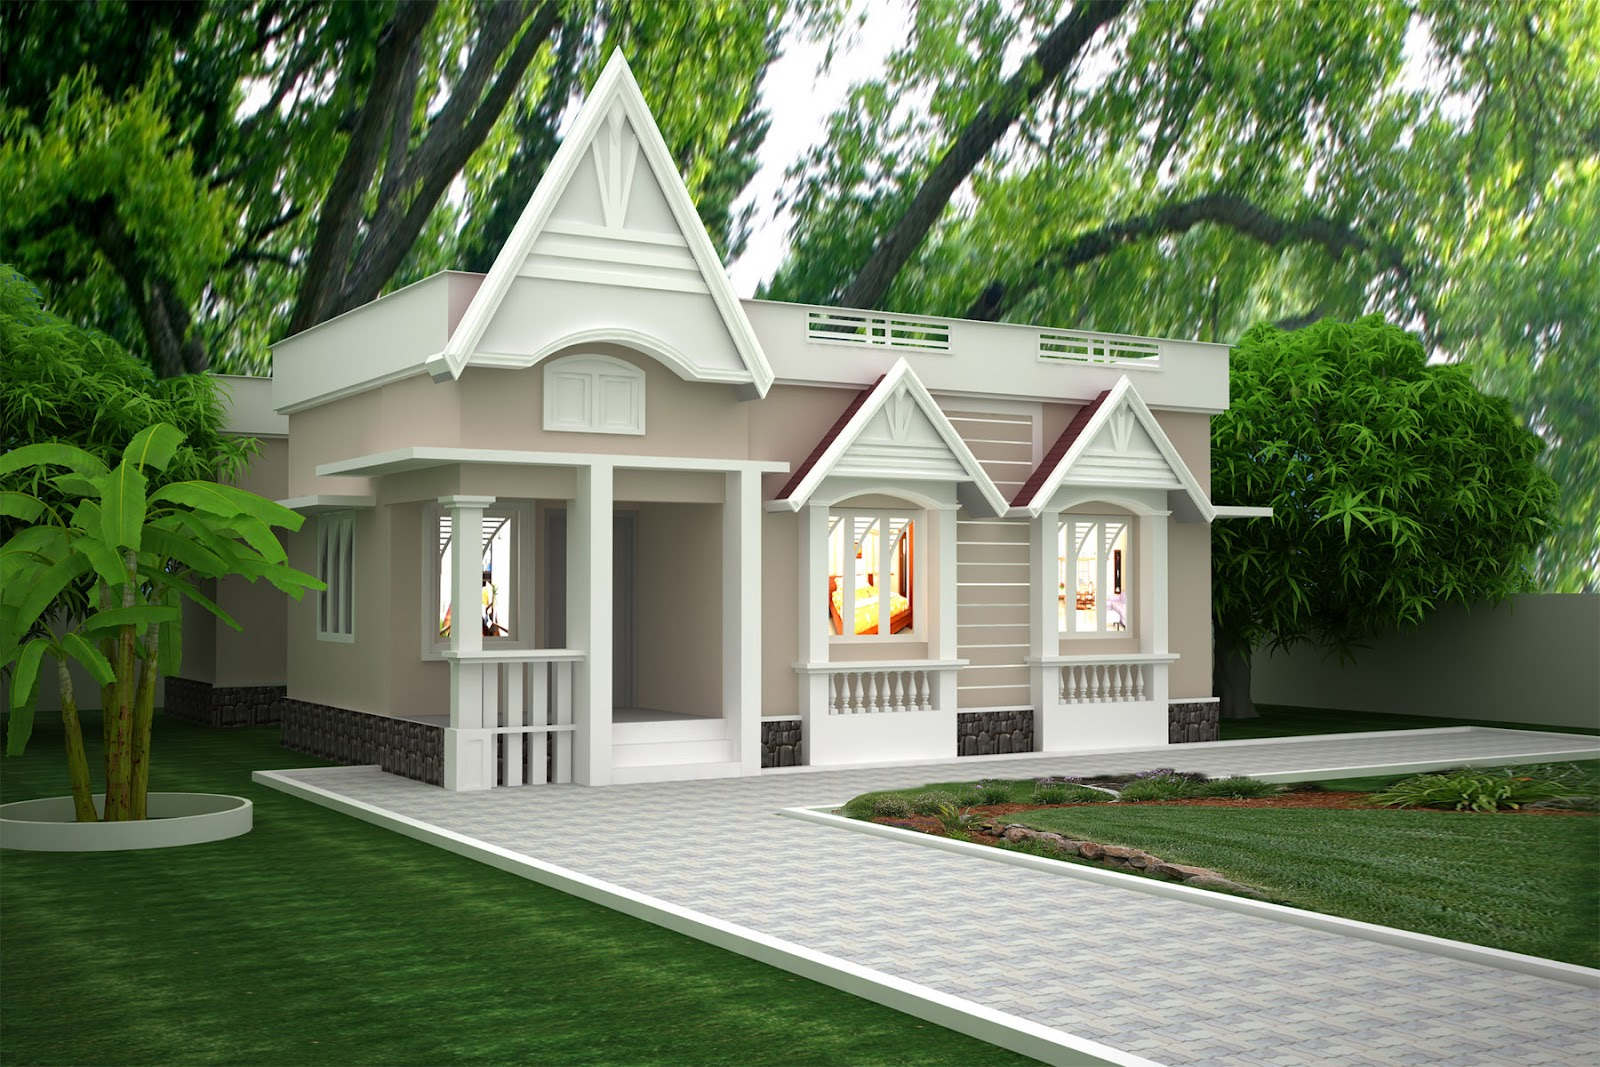 Single Story Exterior House Designs Simple One Story Houses